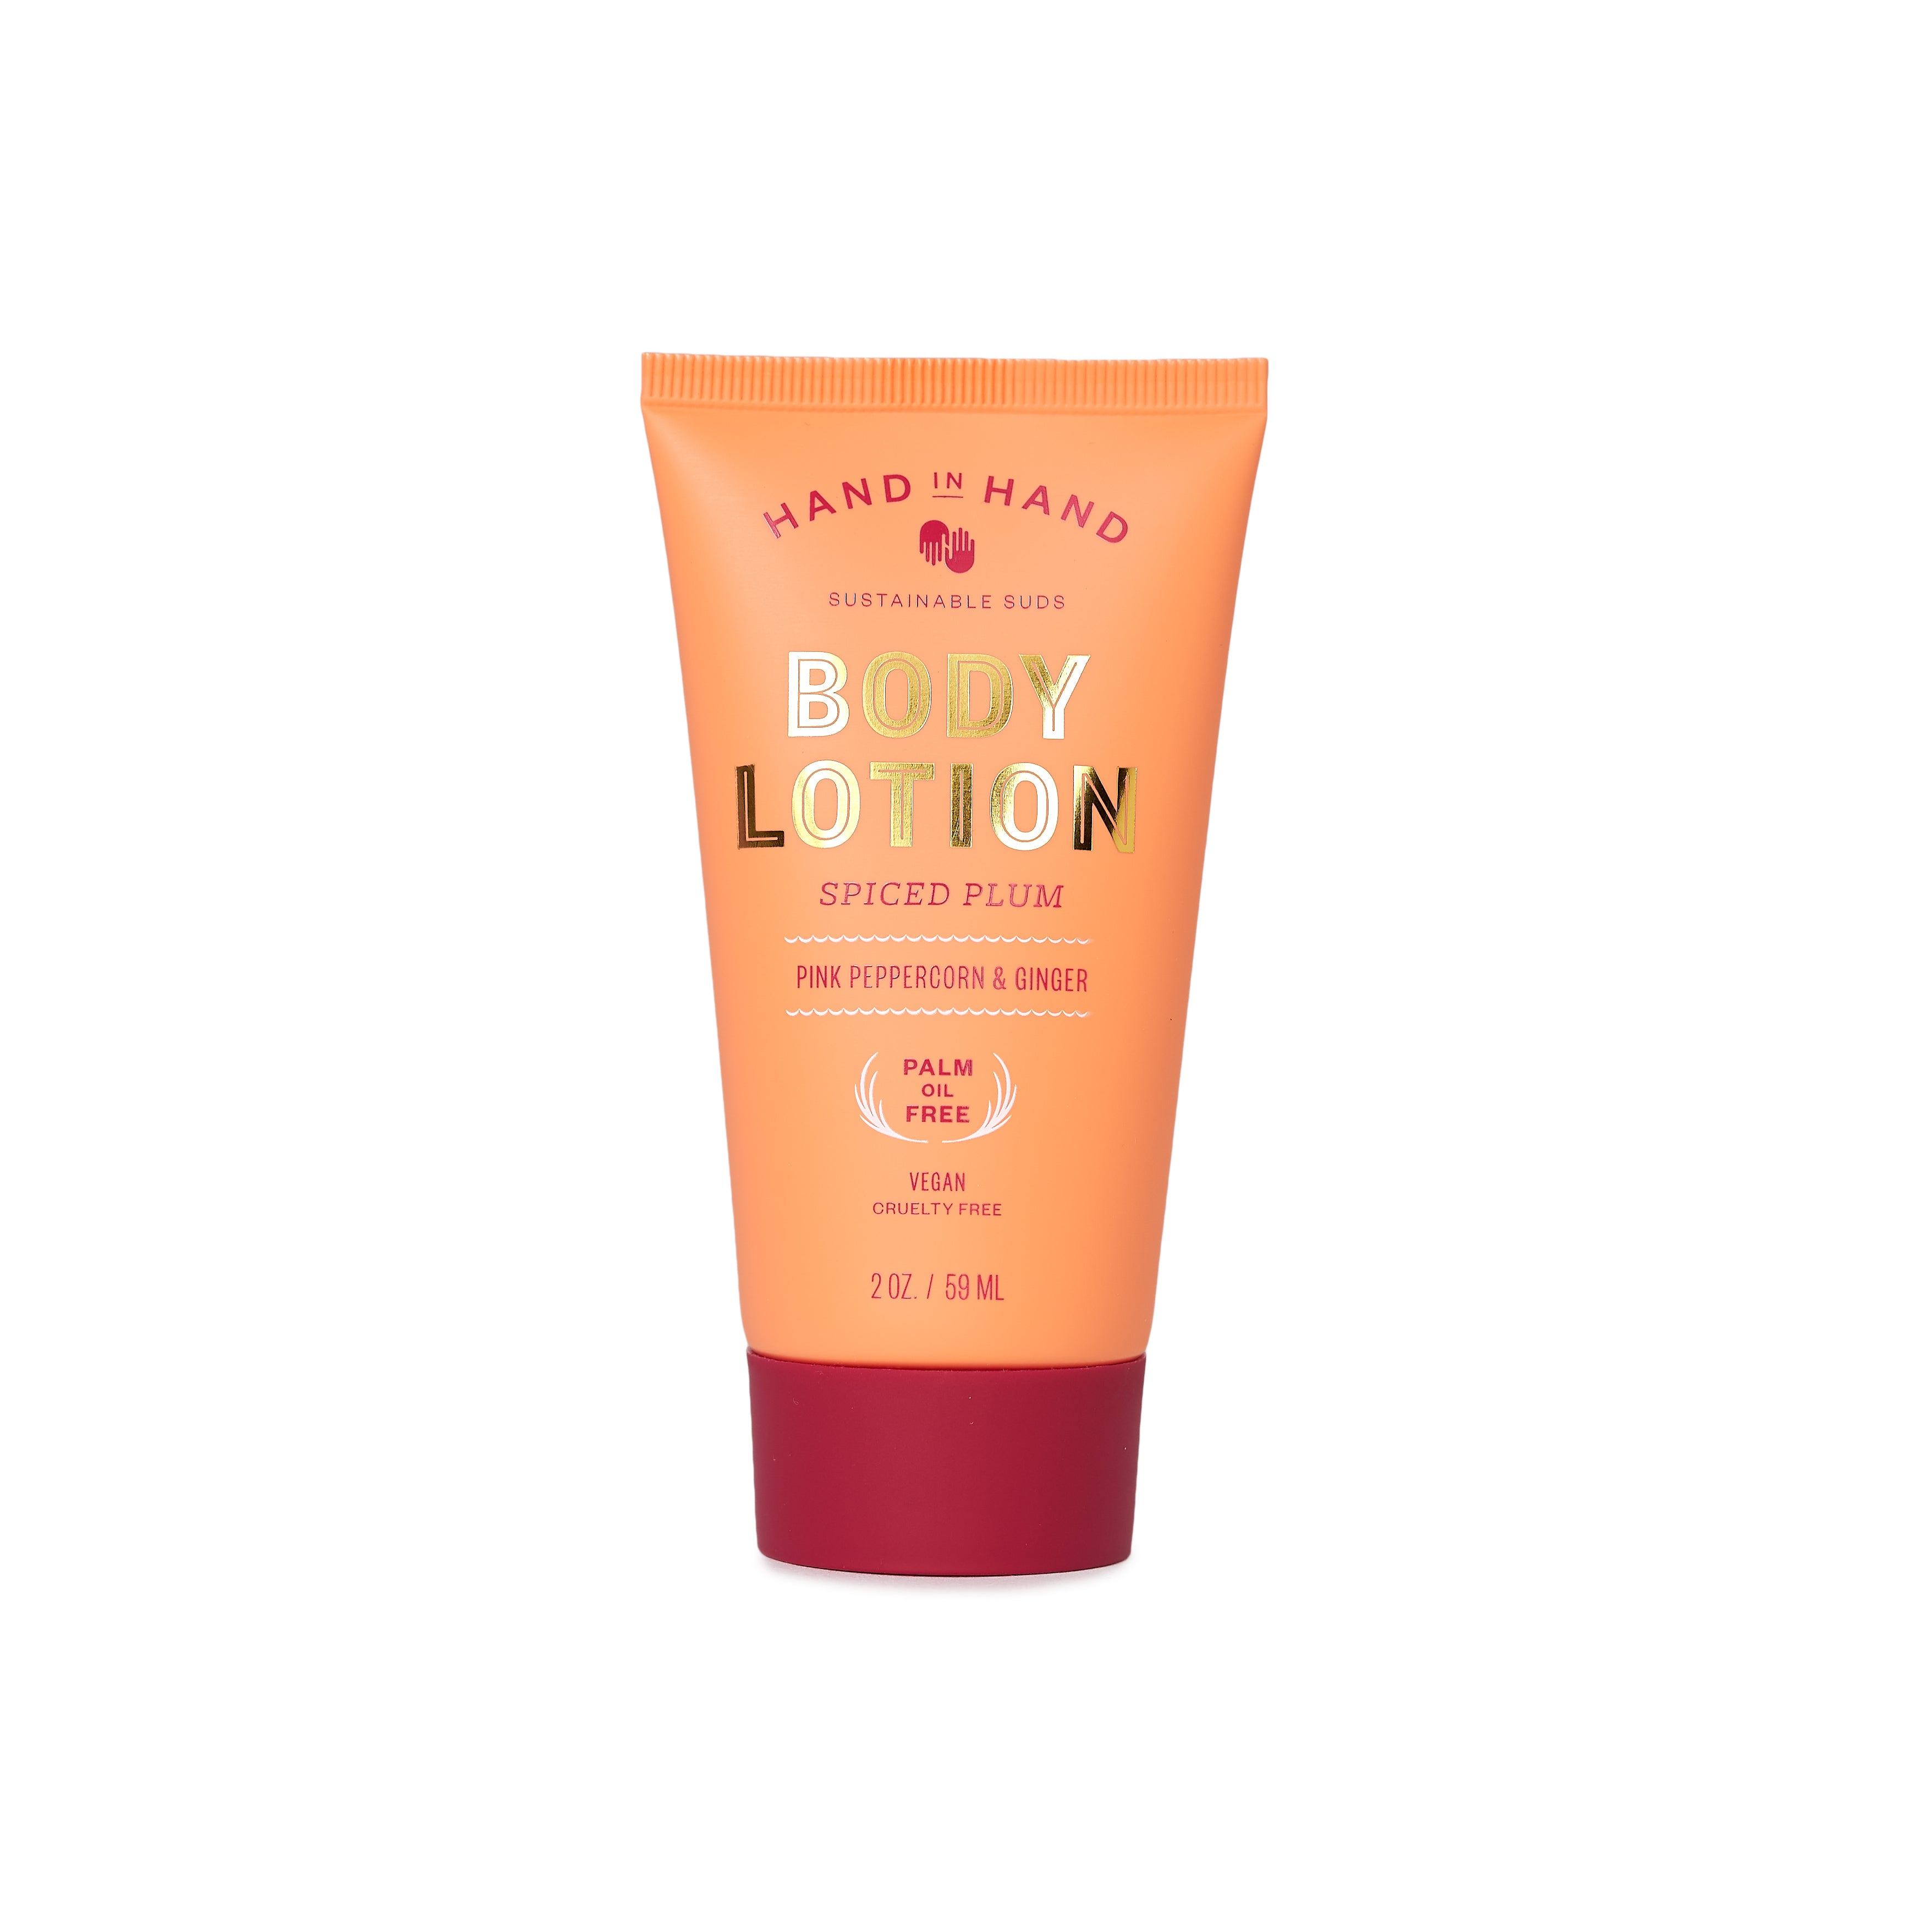 SPICED PLUM BODY LOTION